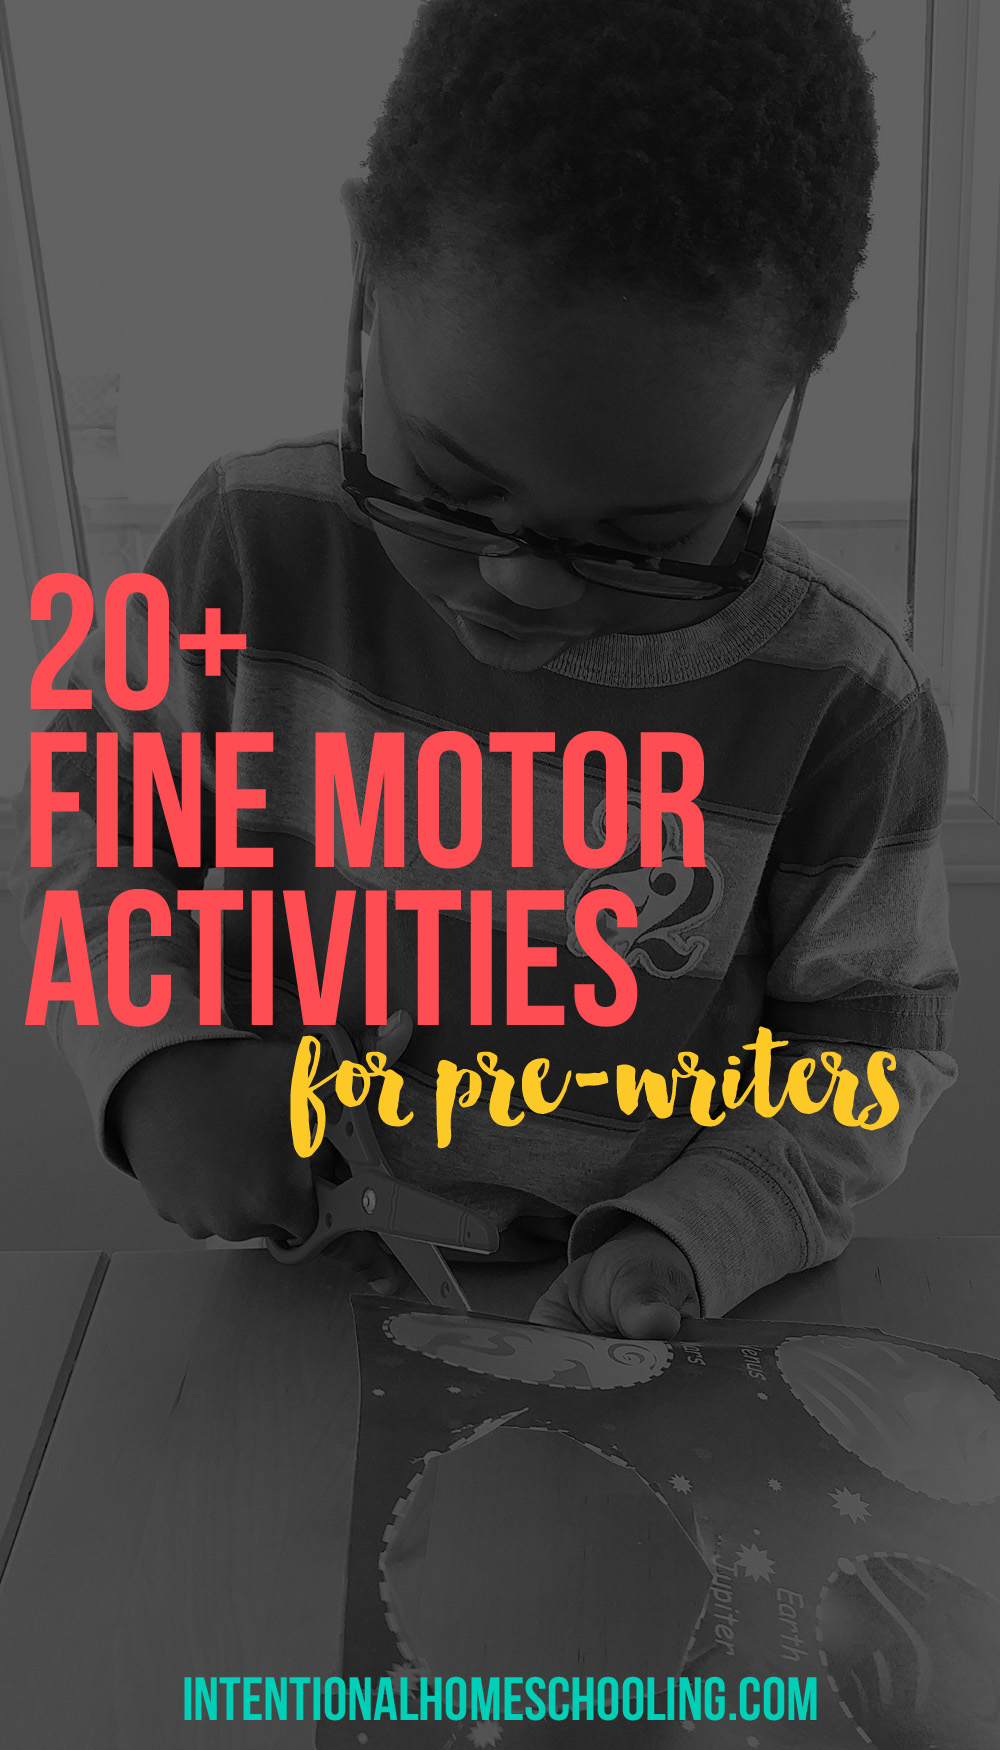 Activities for Fine Motor Development for Preschoolers and Pre-Writers